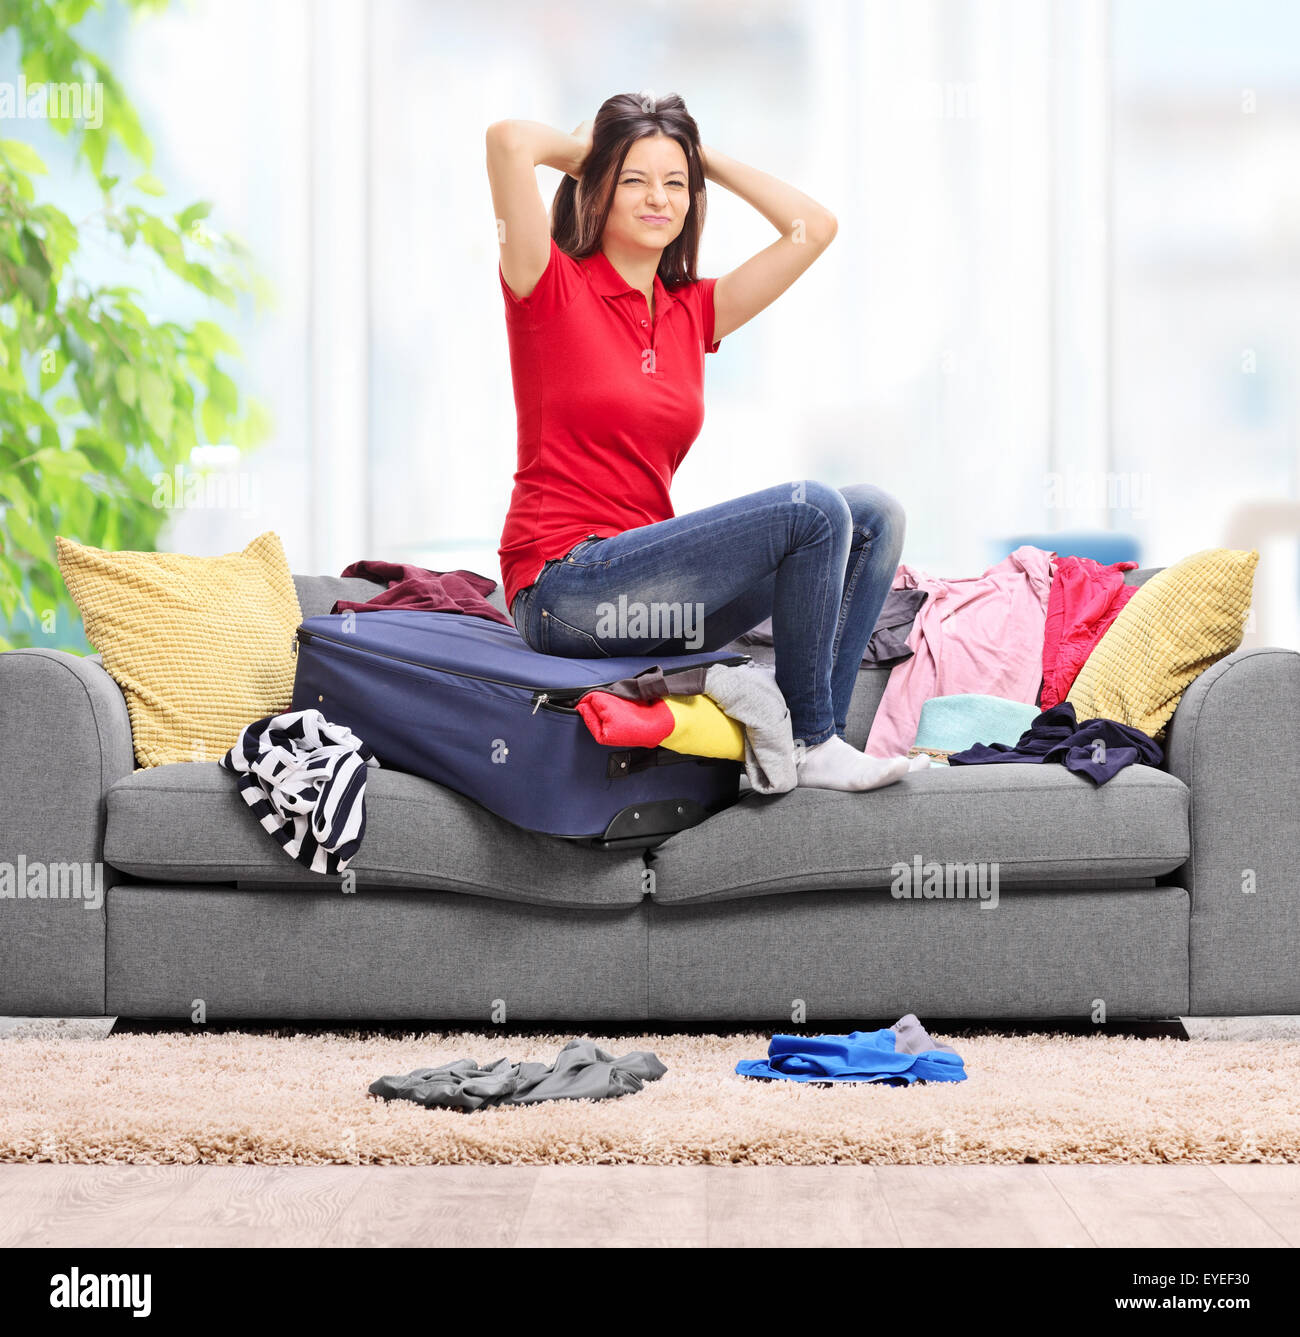 Young upset woman sitting on her suitcase at home and trying to fit all of her clothes in it shot with tilt and - Stock Image